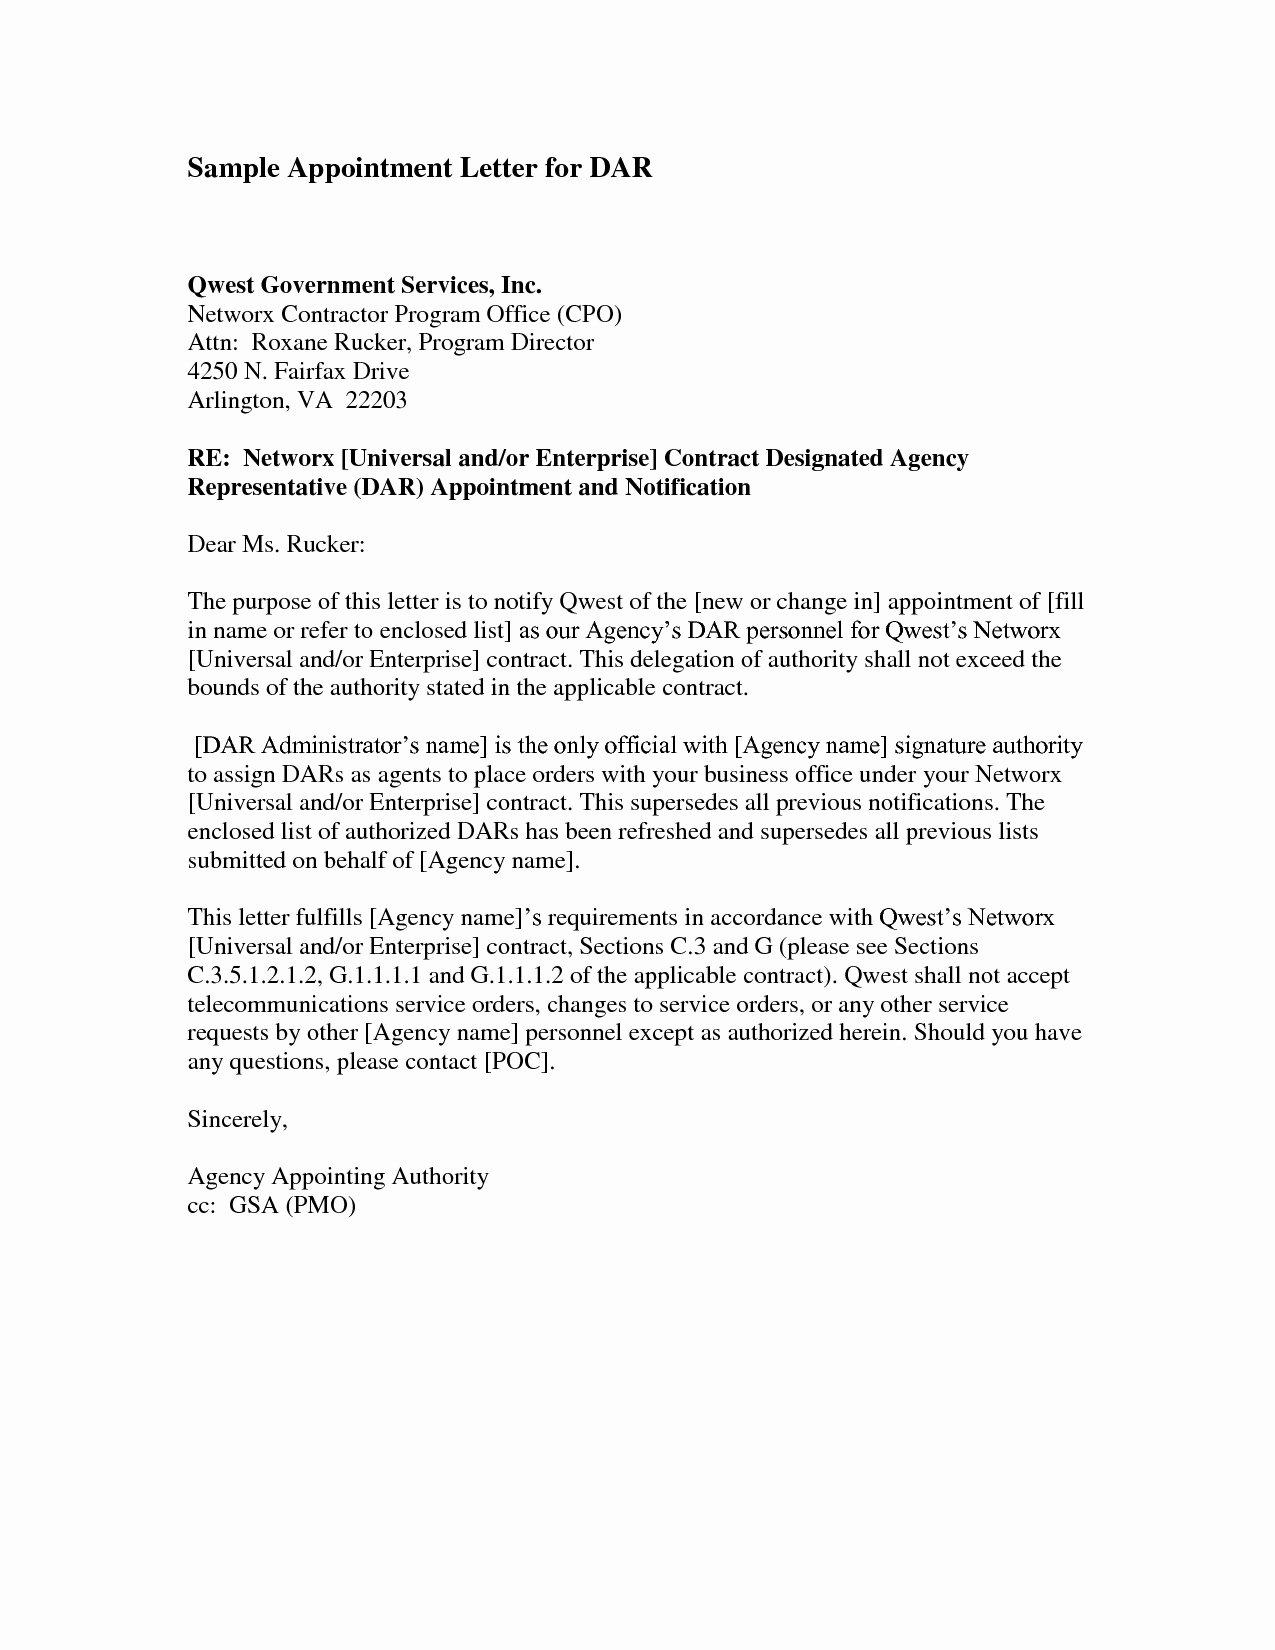 Unauthorized Tenant Letter Template Fresh Unauthorized Tenant Letter Template Examples